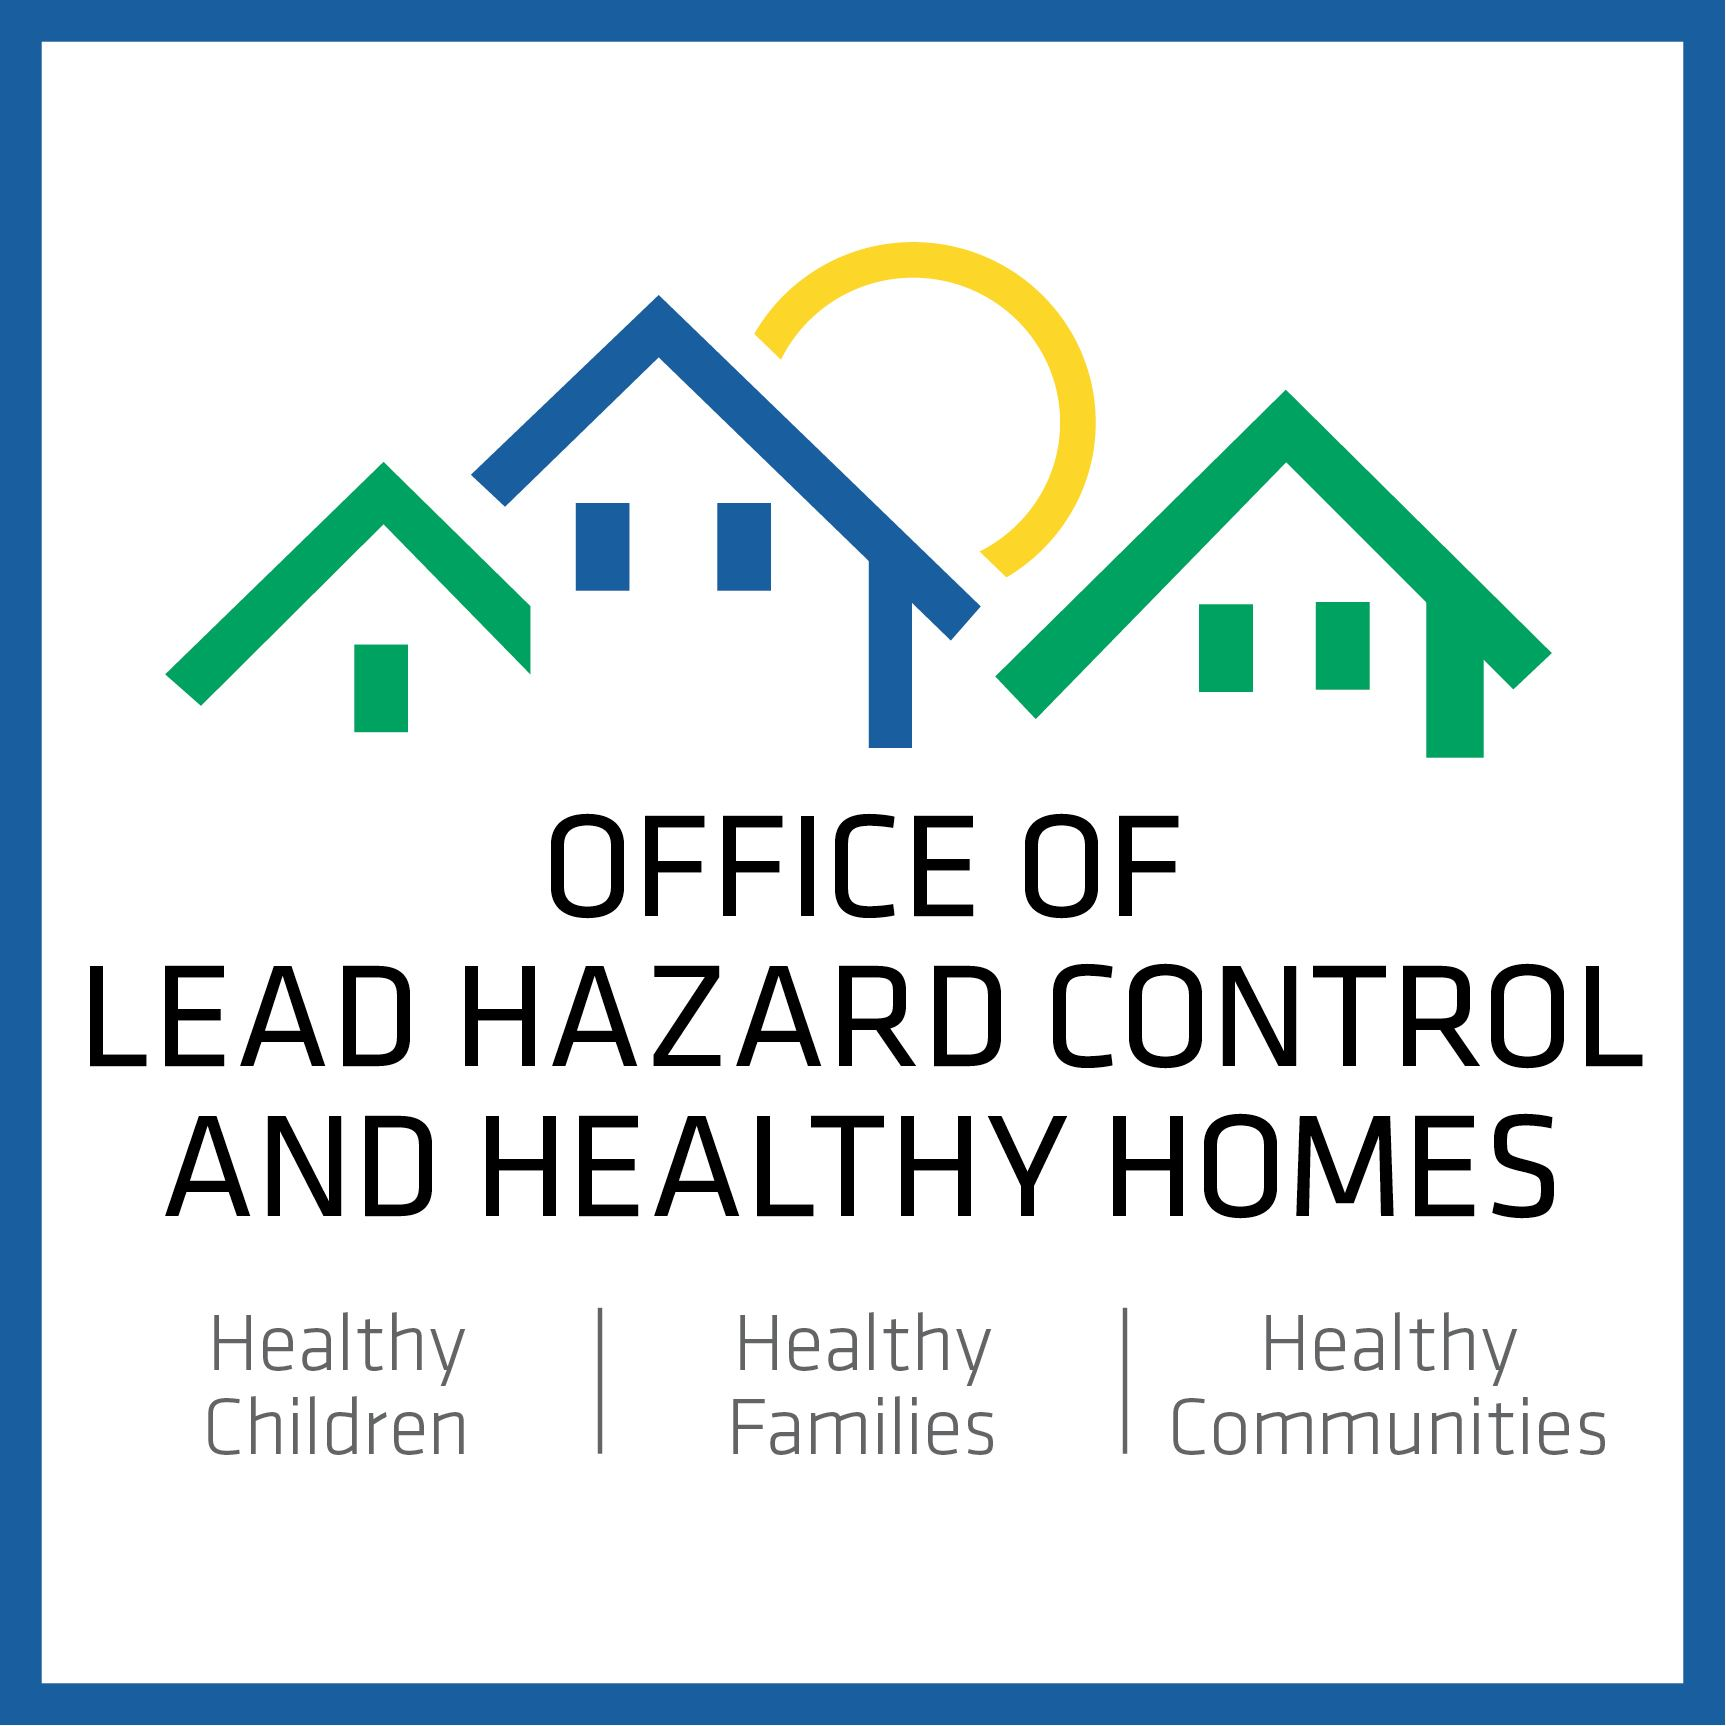 HUD Office of Lead Hazard Control and Healthy Homes Logo